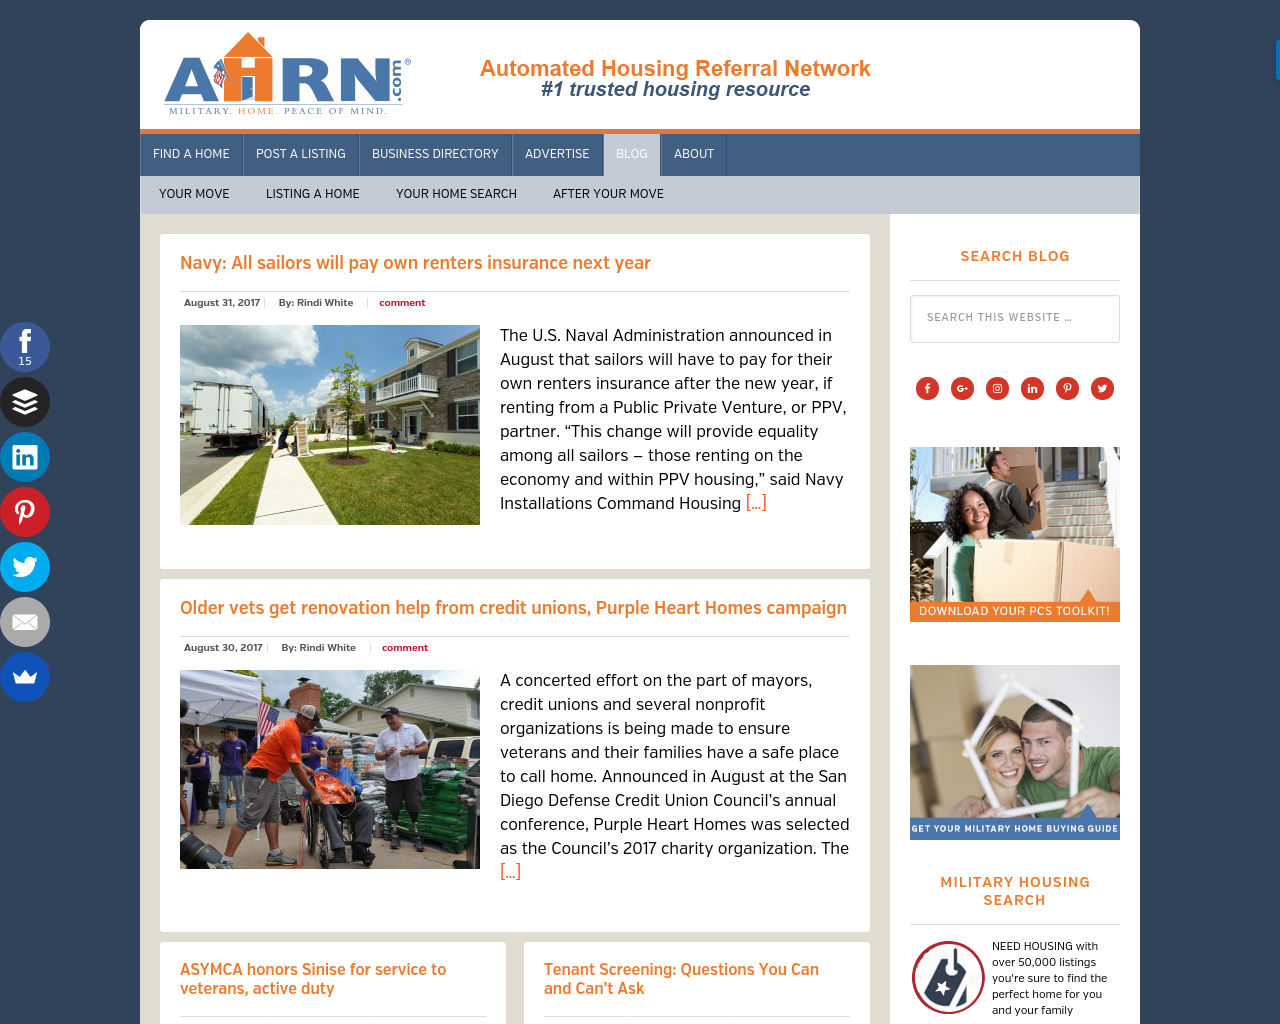 Automated-Housing-Referral-Network-(AHRN.com)-Advertising-Reviews-Pricing